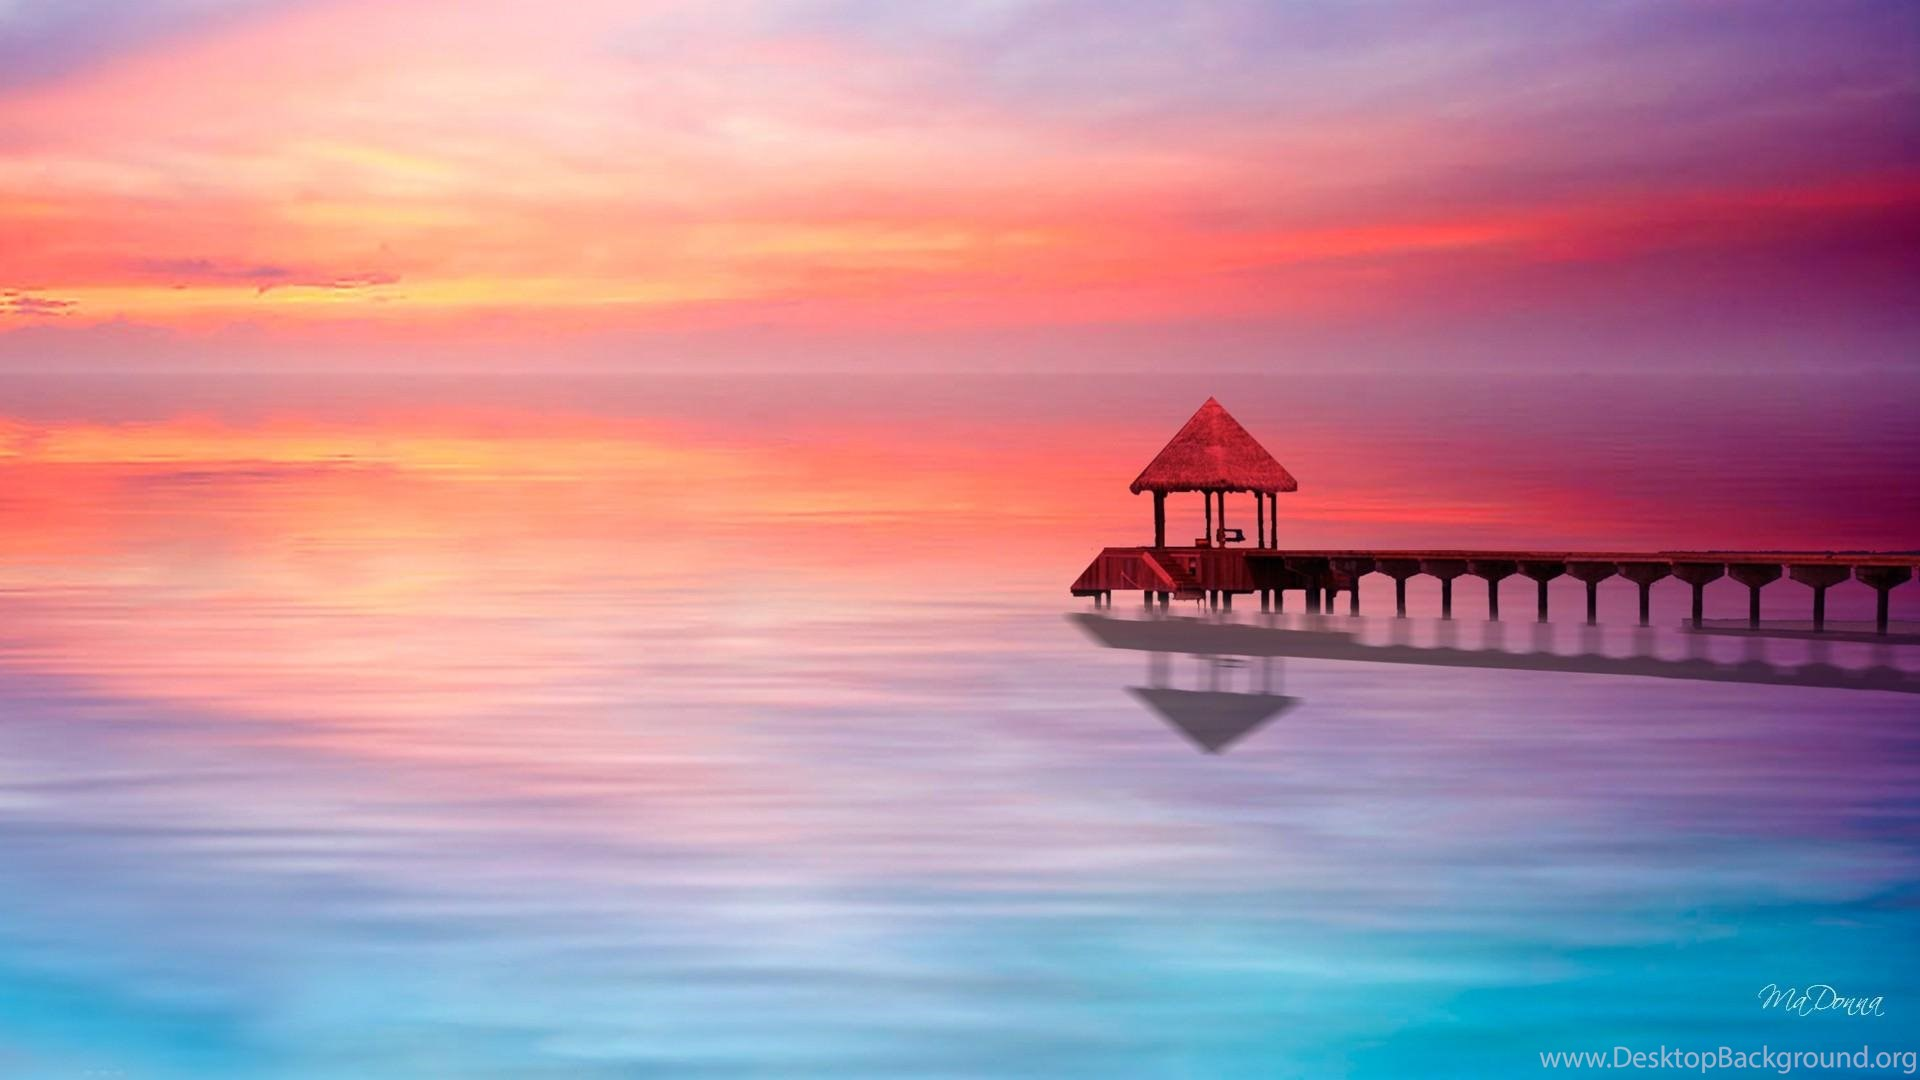 Pastel wallpapers backgrounds with quality hd desktop background - Pastel background hd ...